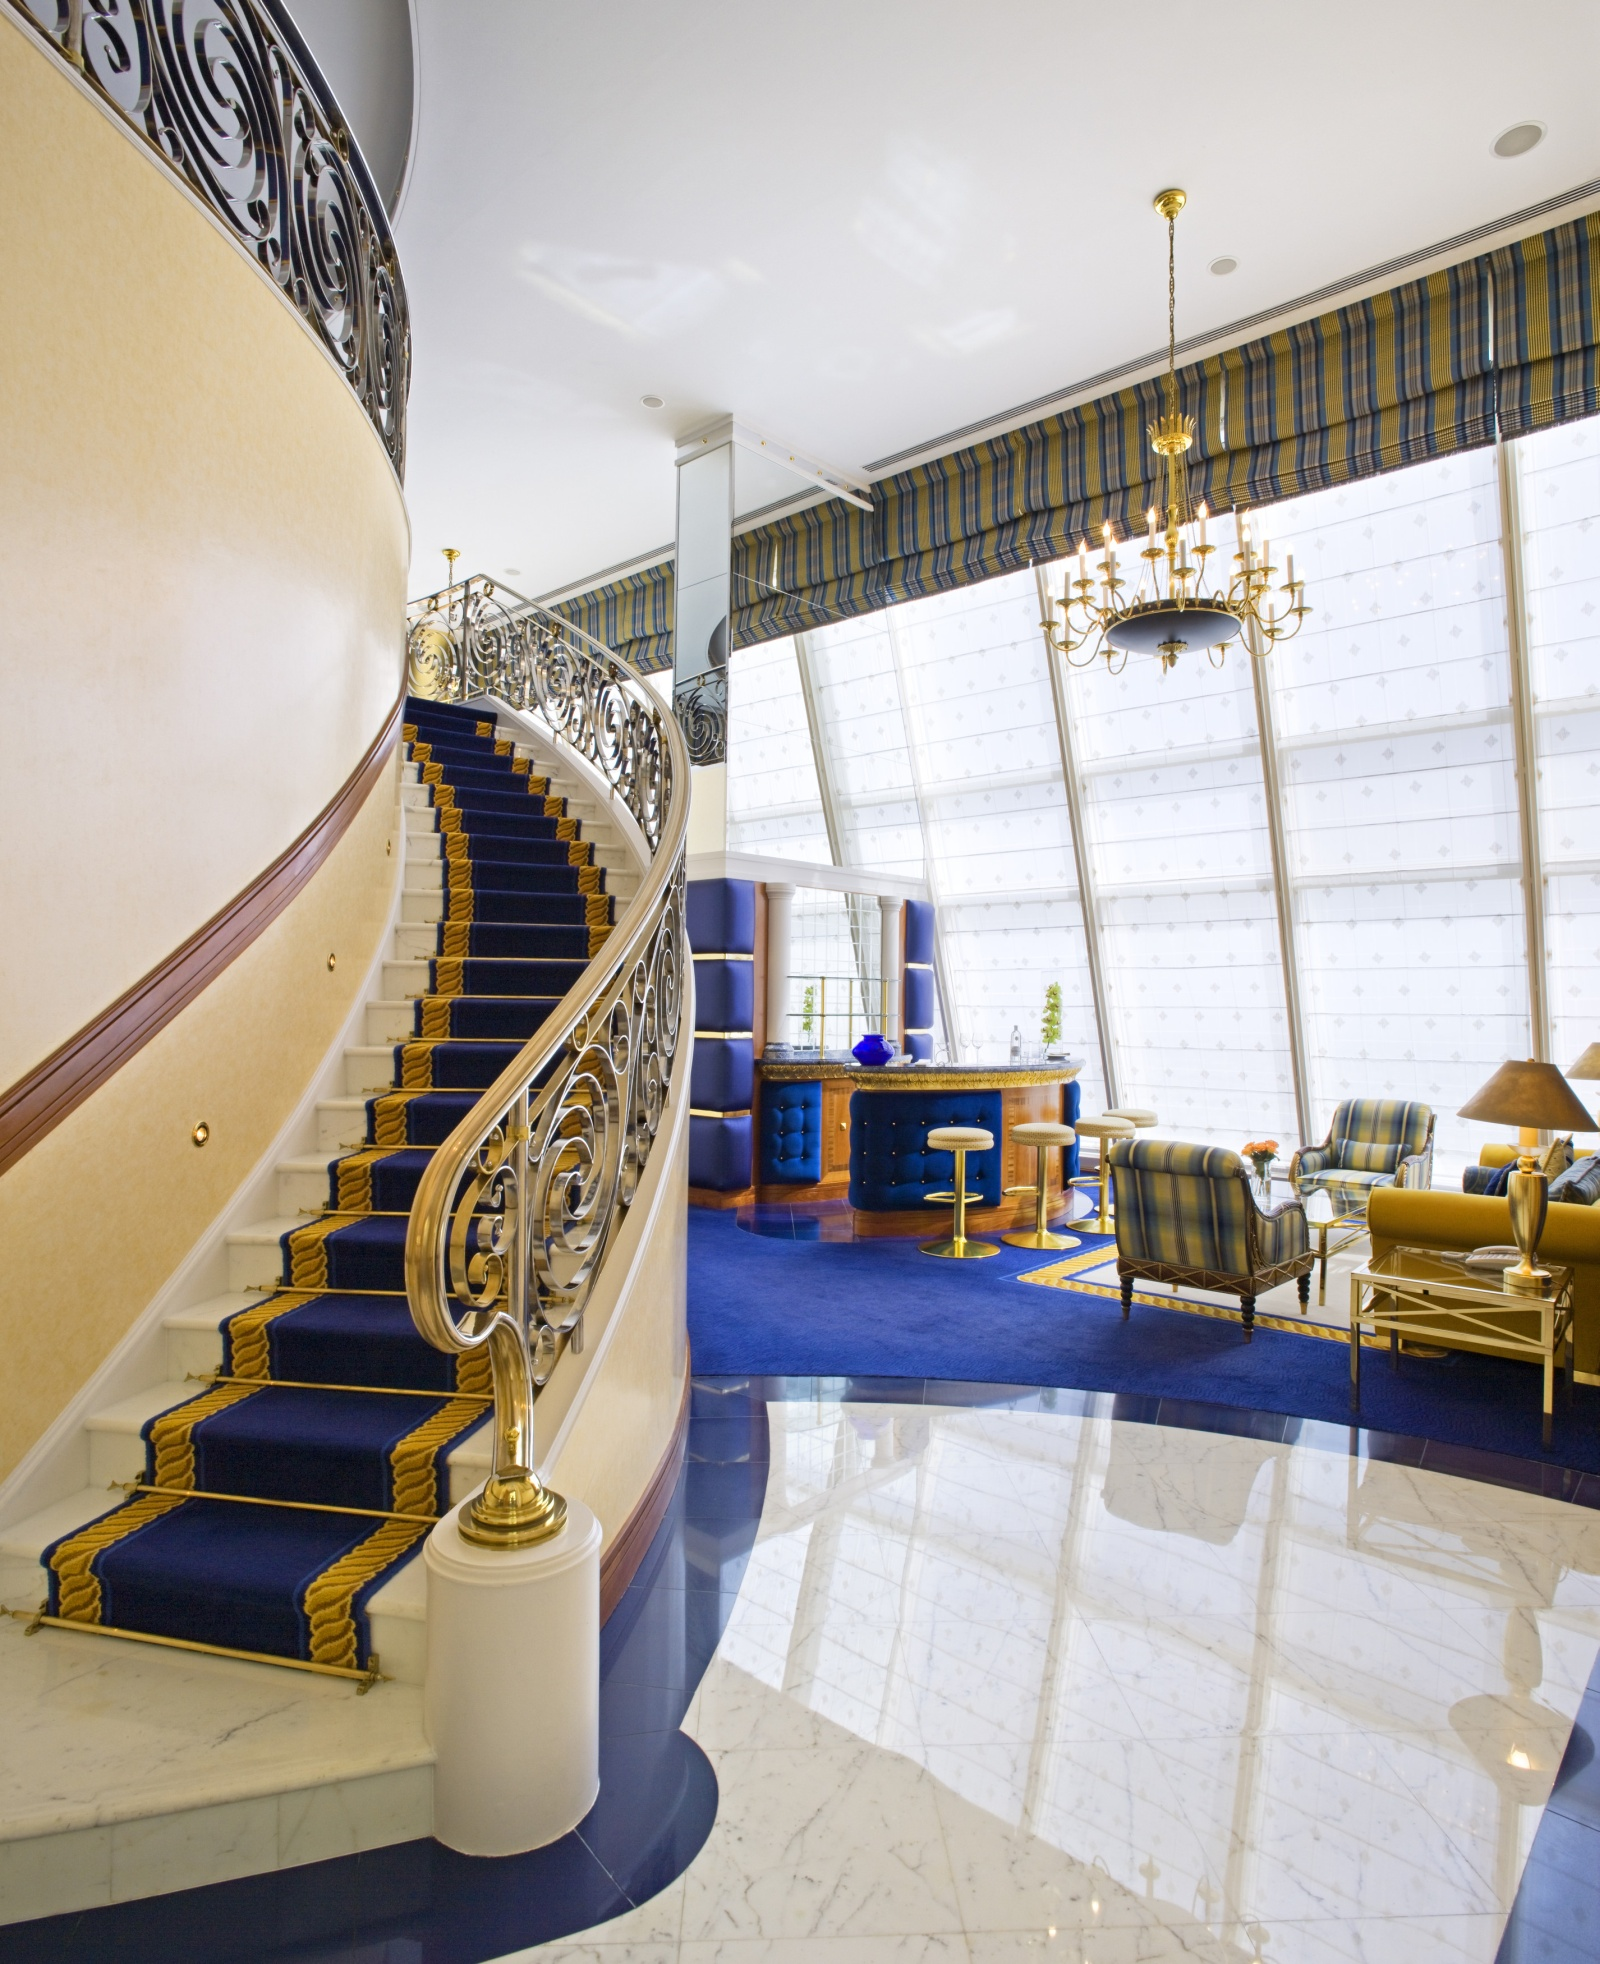 Exclusive Hotel In Dubai: Burj Al Arab